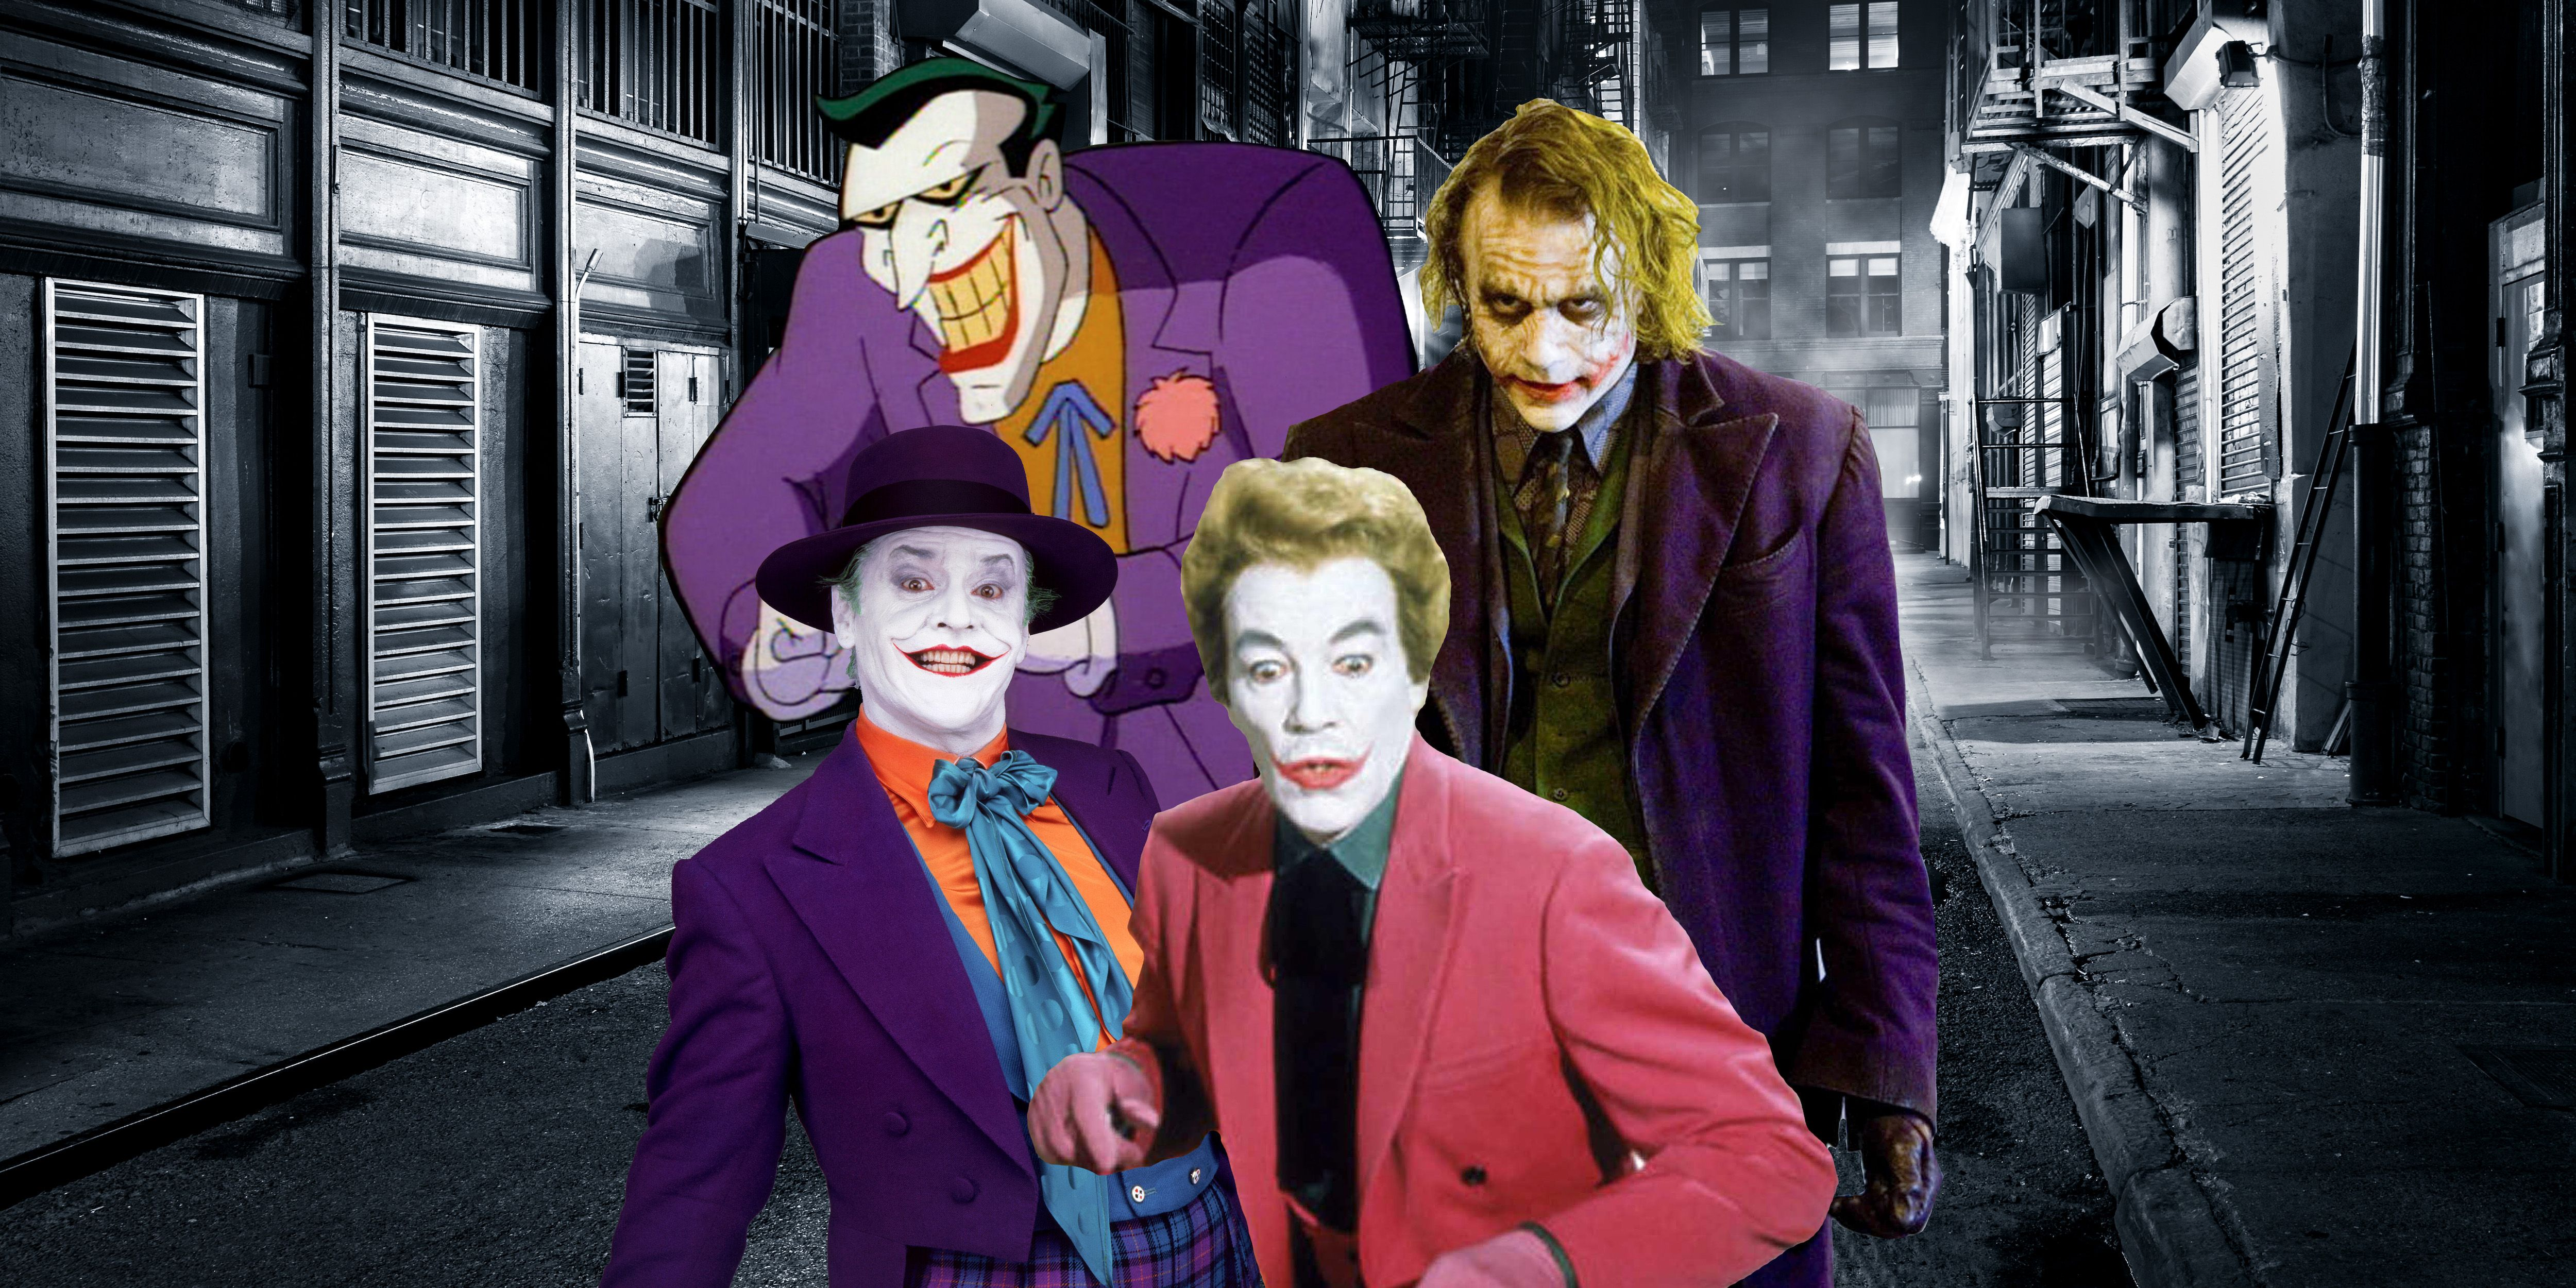 The Best Joker Actors Ranked From Worst to Best